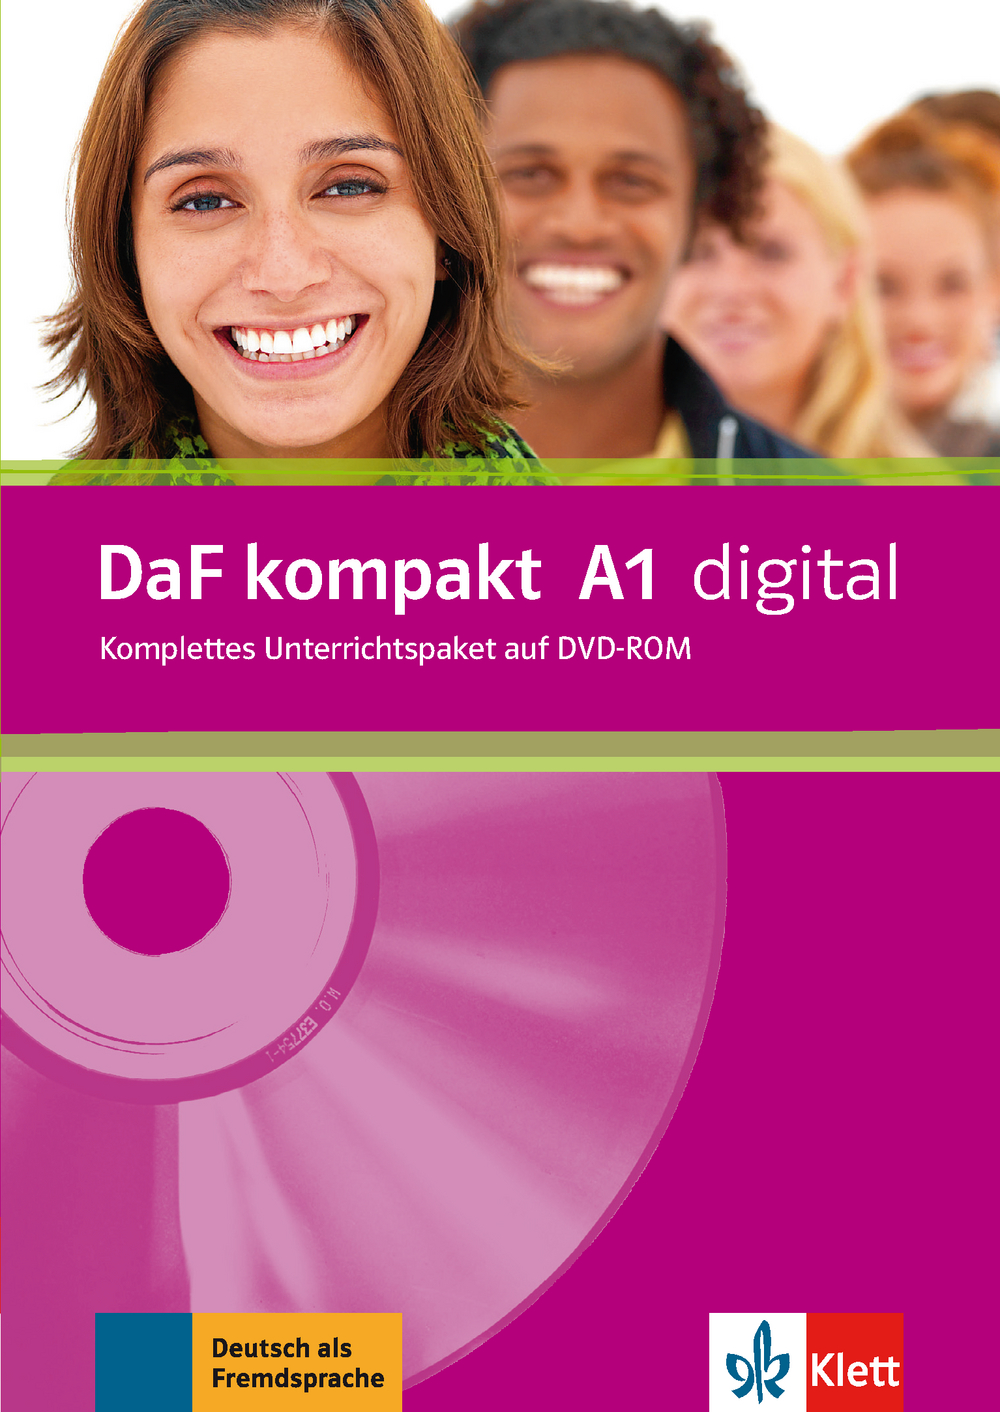 DaF kompakt A1 digital